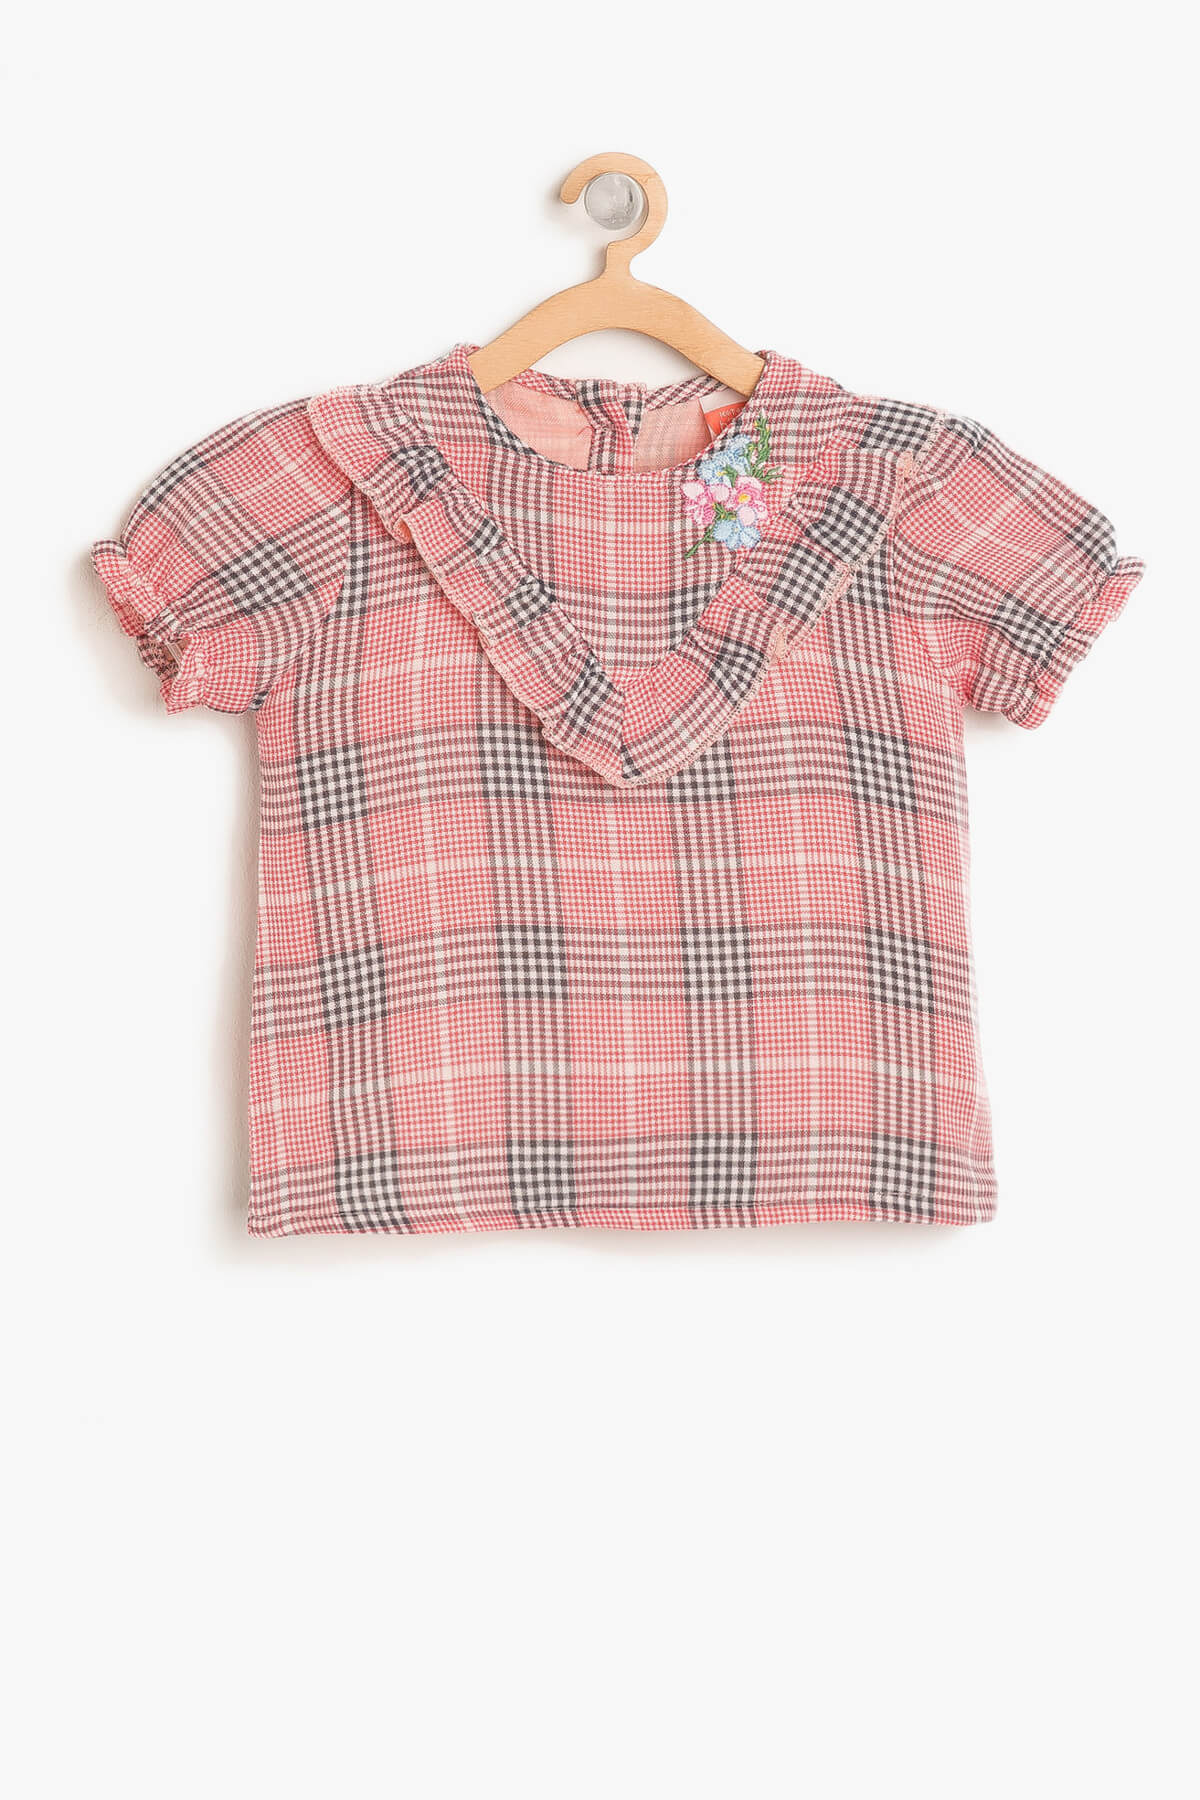 Koton Kids Red Baby Girl Checkered Blouse 8ymg69383zw